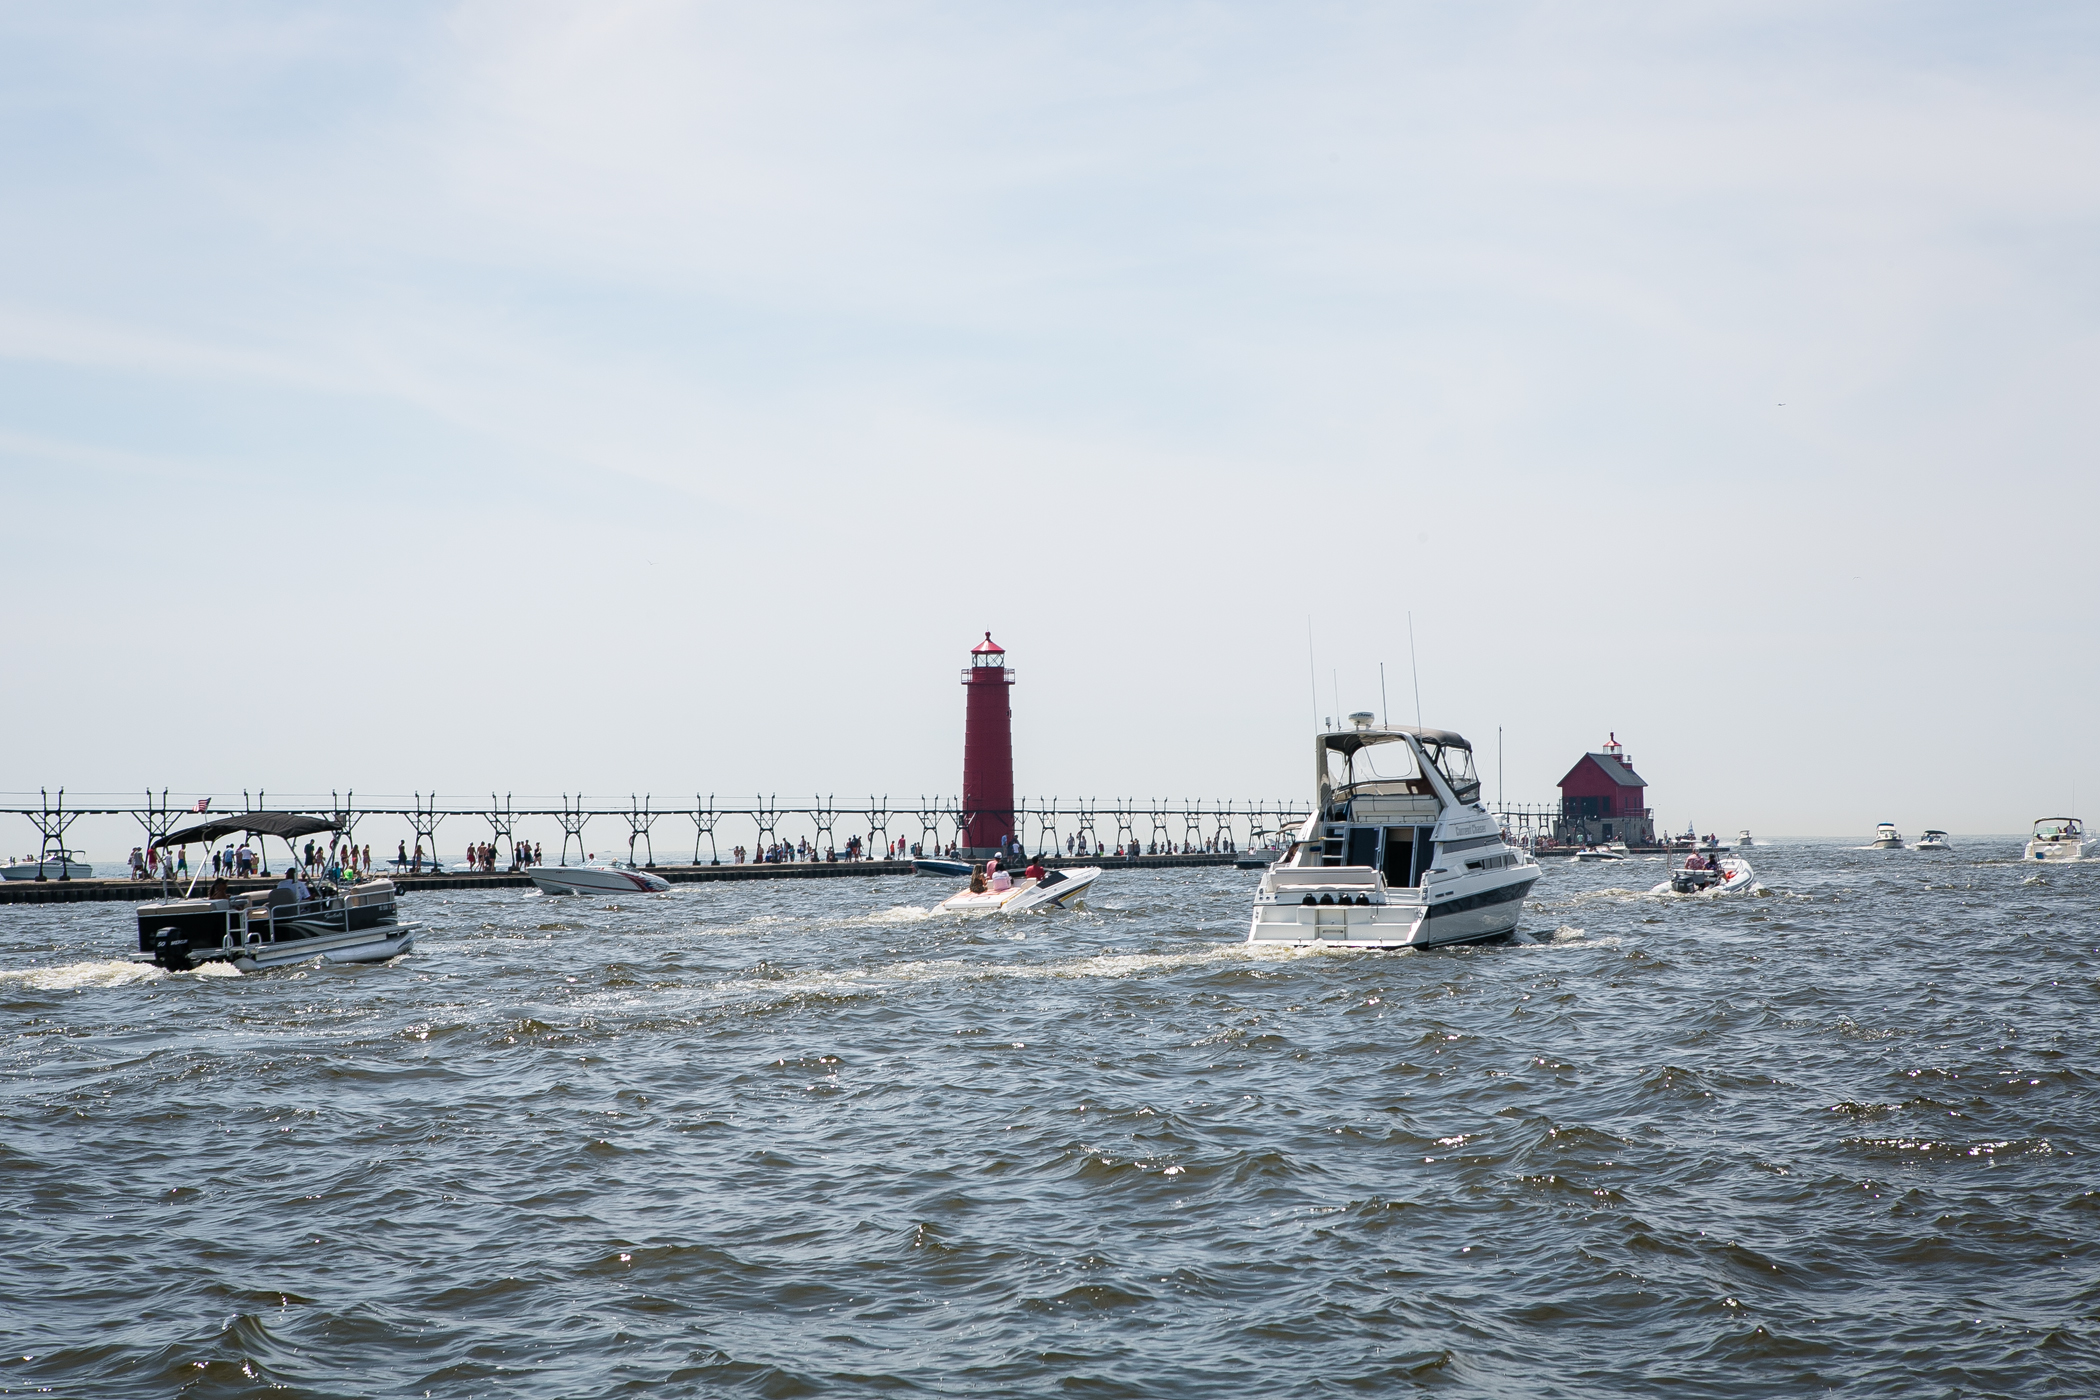 A 45-minute drive from Founders will land you at the lakeside town of Grand Haven, on Lake Michigan.